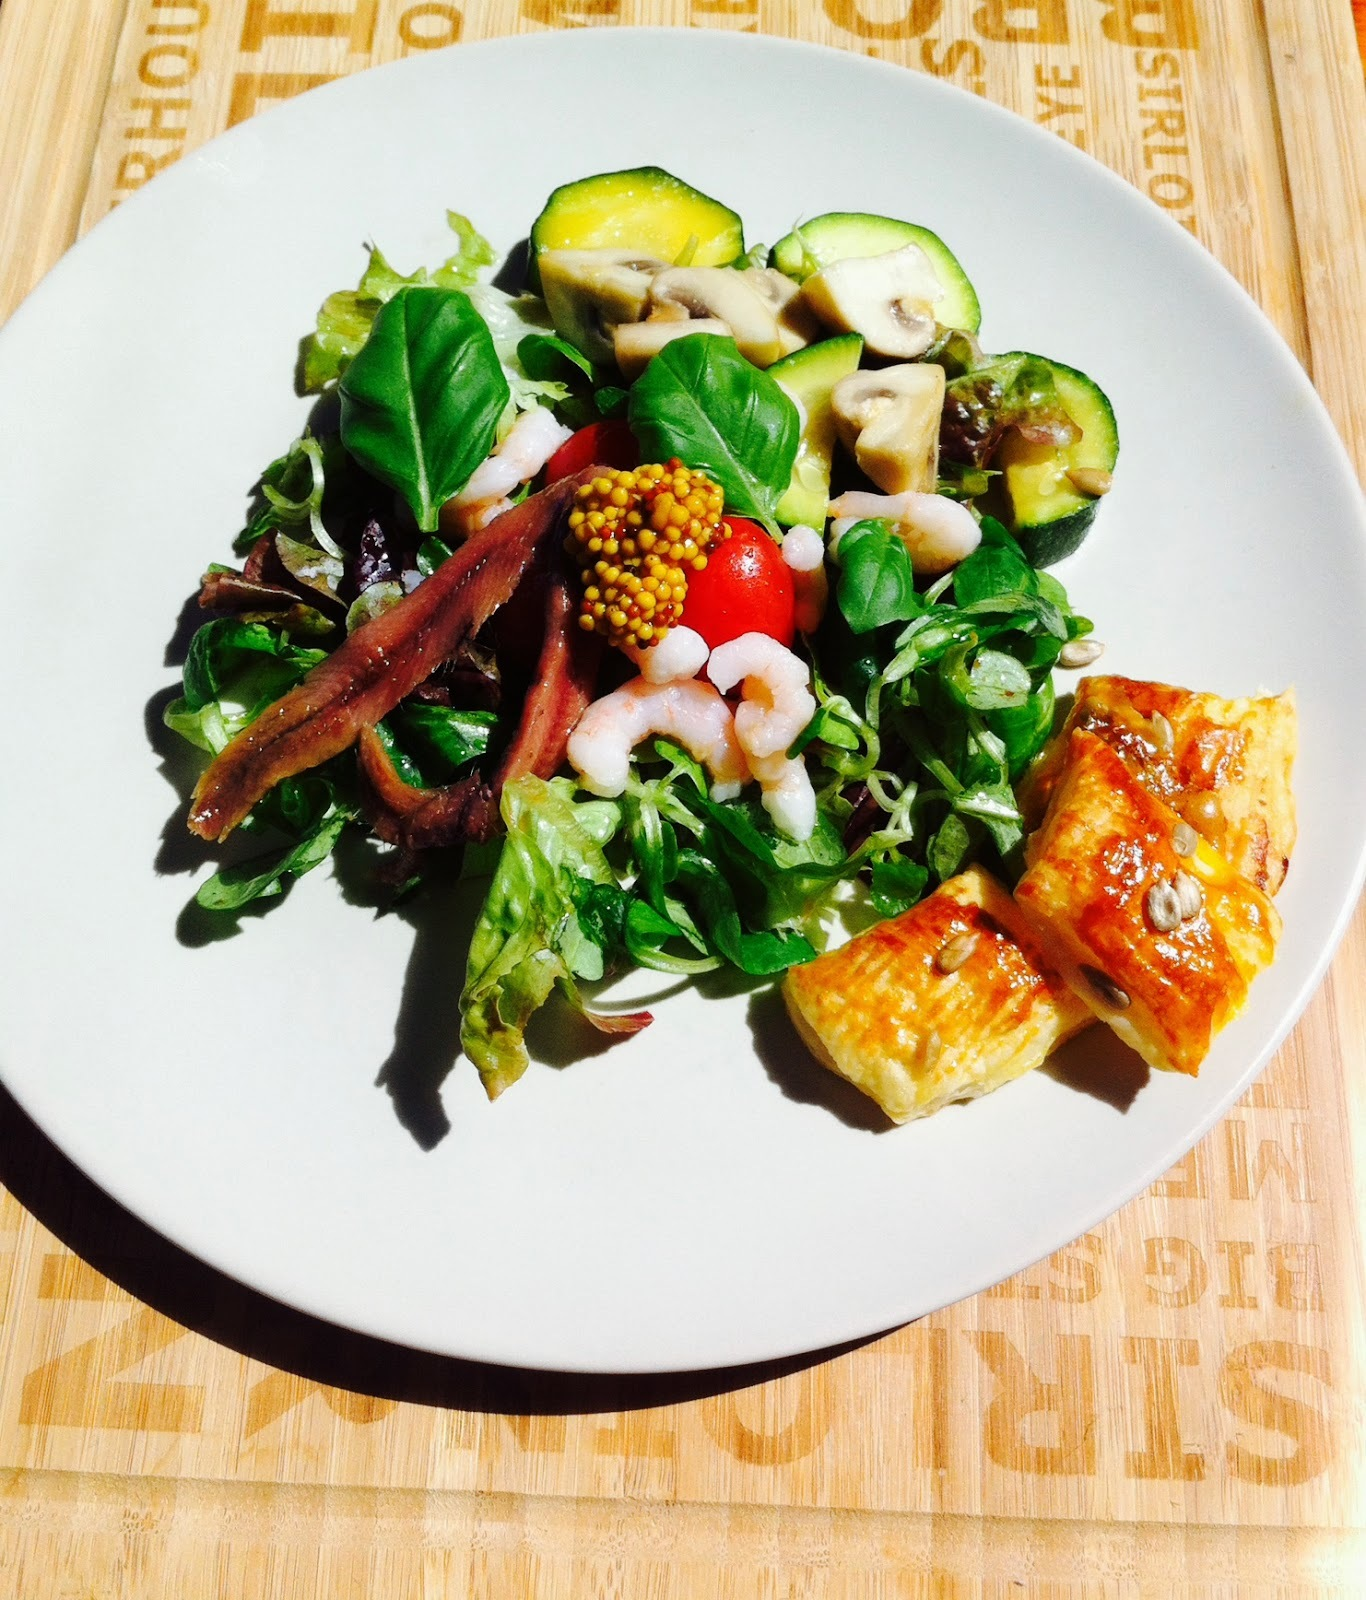 SEAFOOD OVER MIXED GREENS WITH BASIL VINAIGRETTE